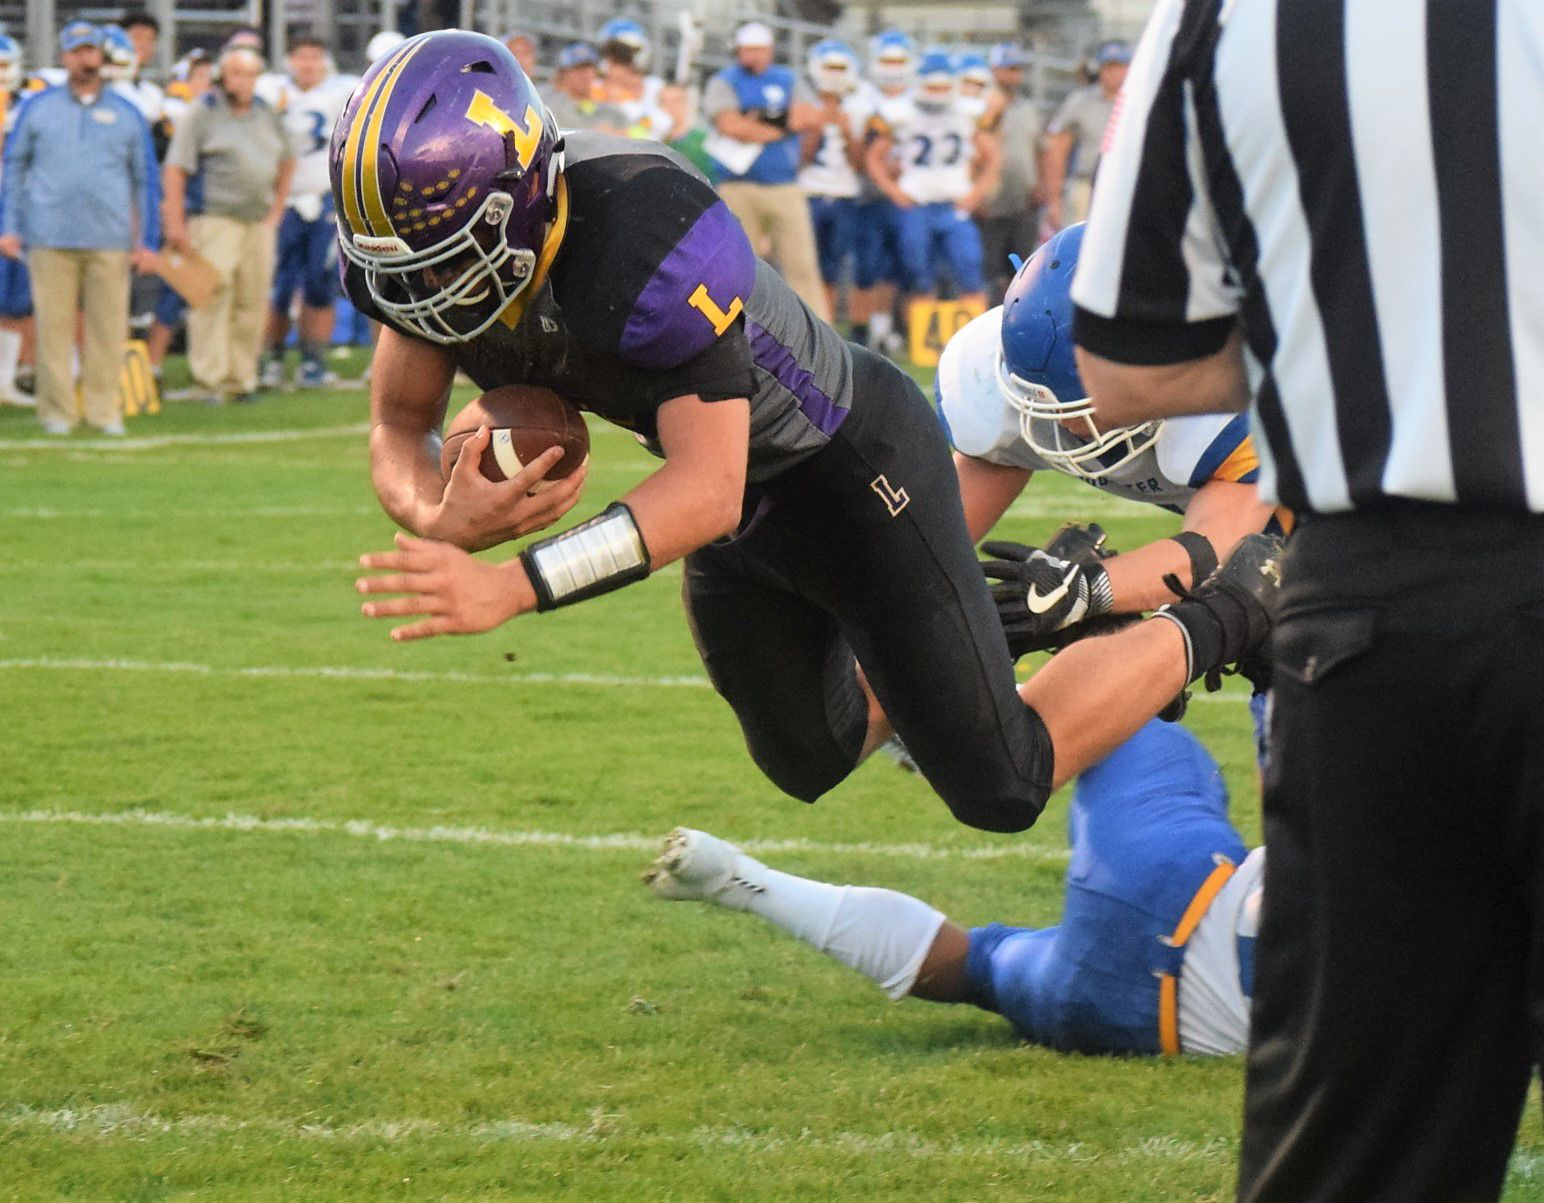 Stover, Lexington in hunt for OCC title